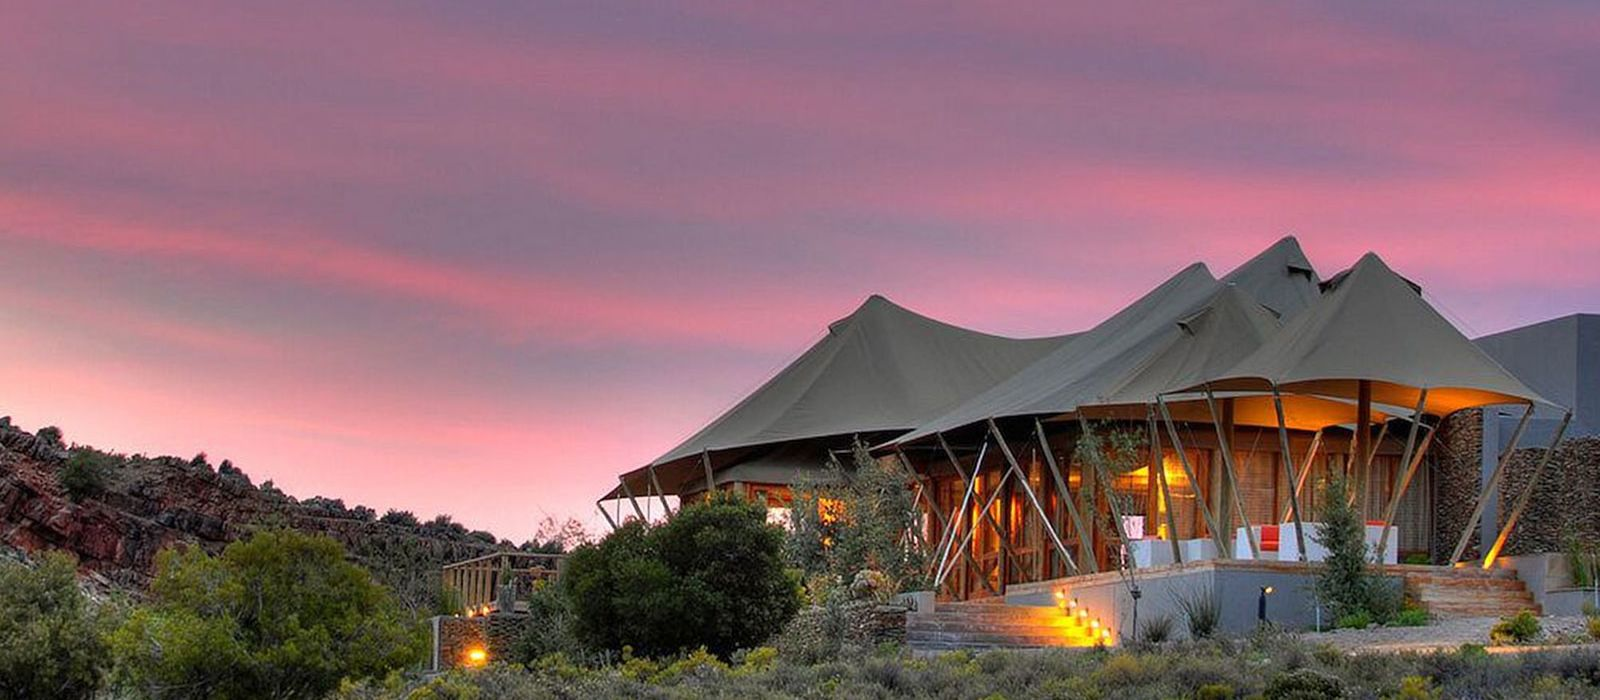 Hotel Sanbona Dwyka Tented Lodge South Africa